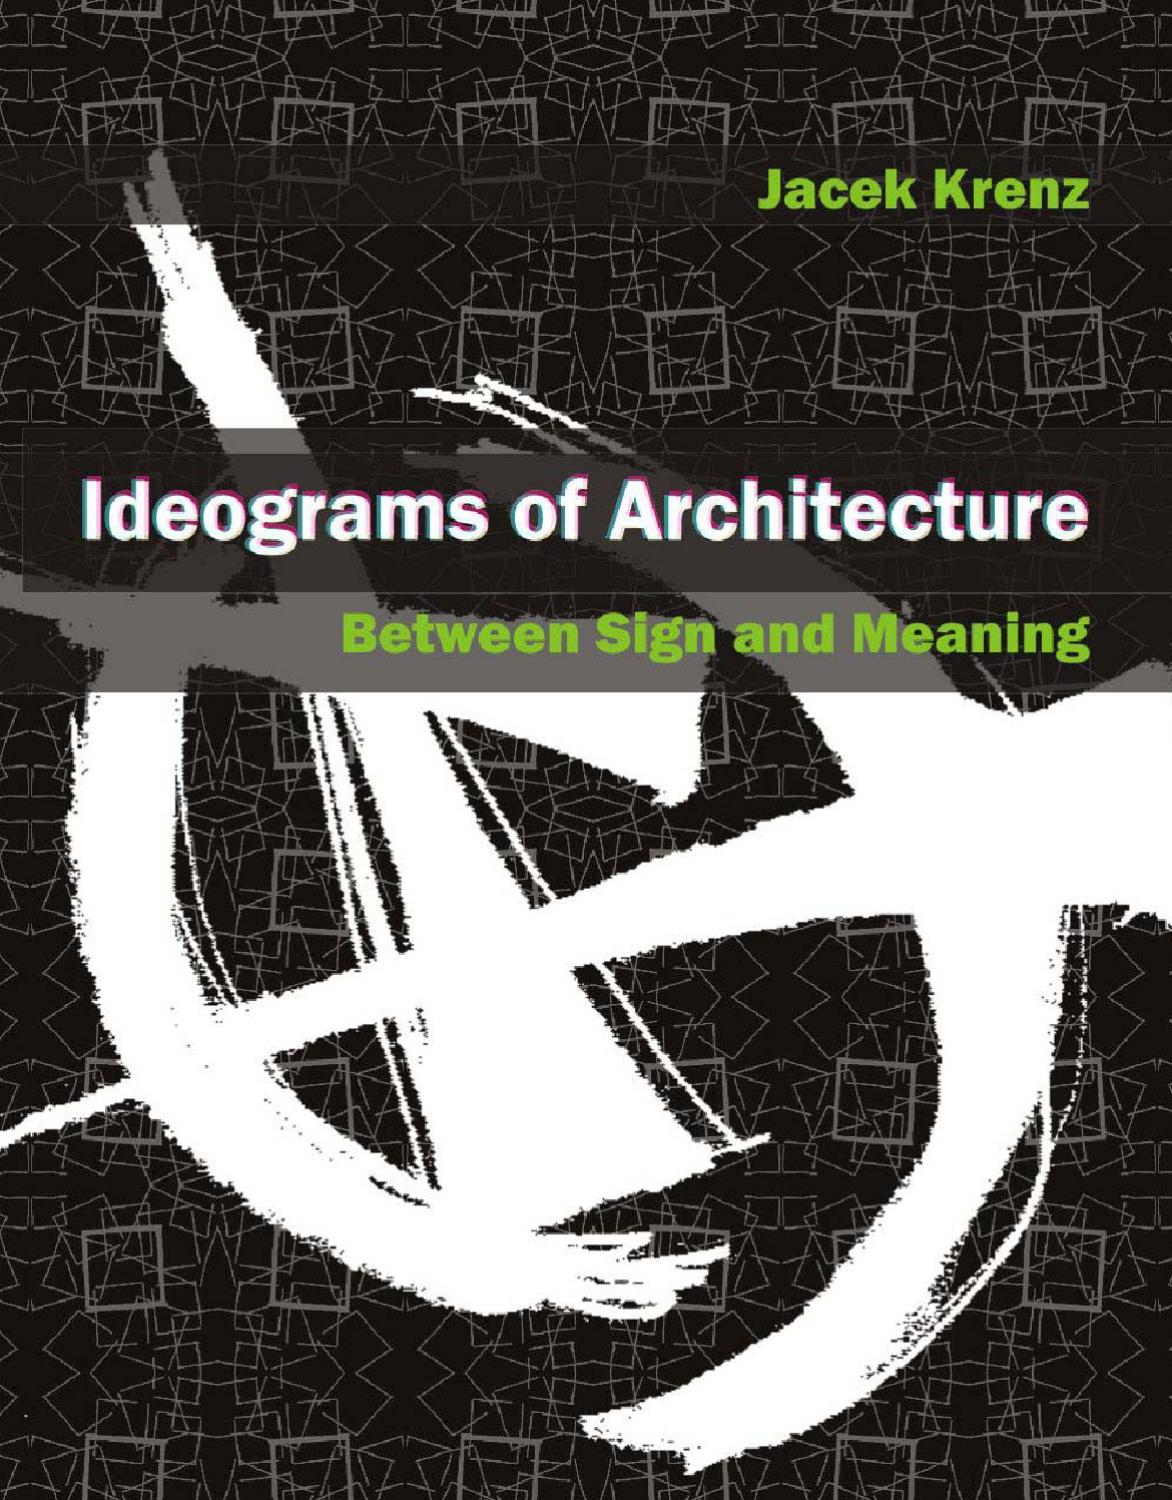 Ideograms In Architecture. Between Sign And Meaning By Jacek Krenz   Issuu